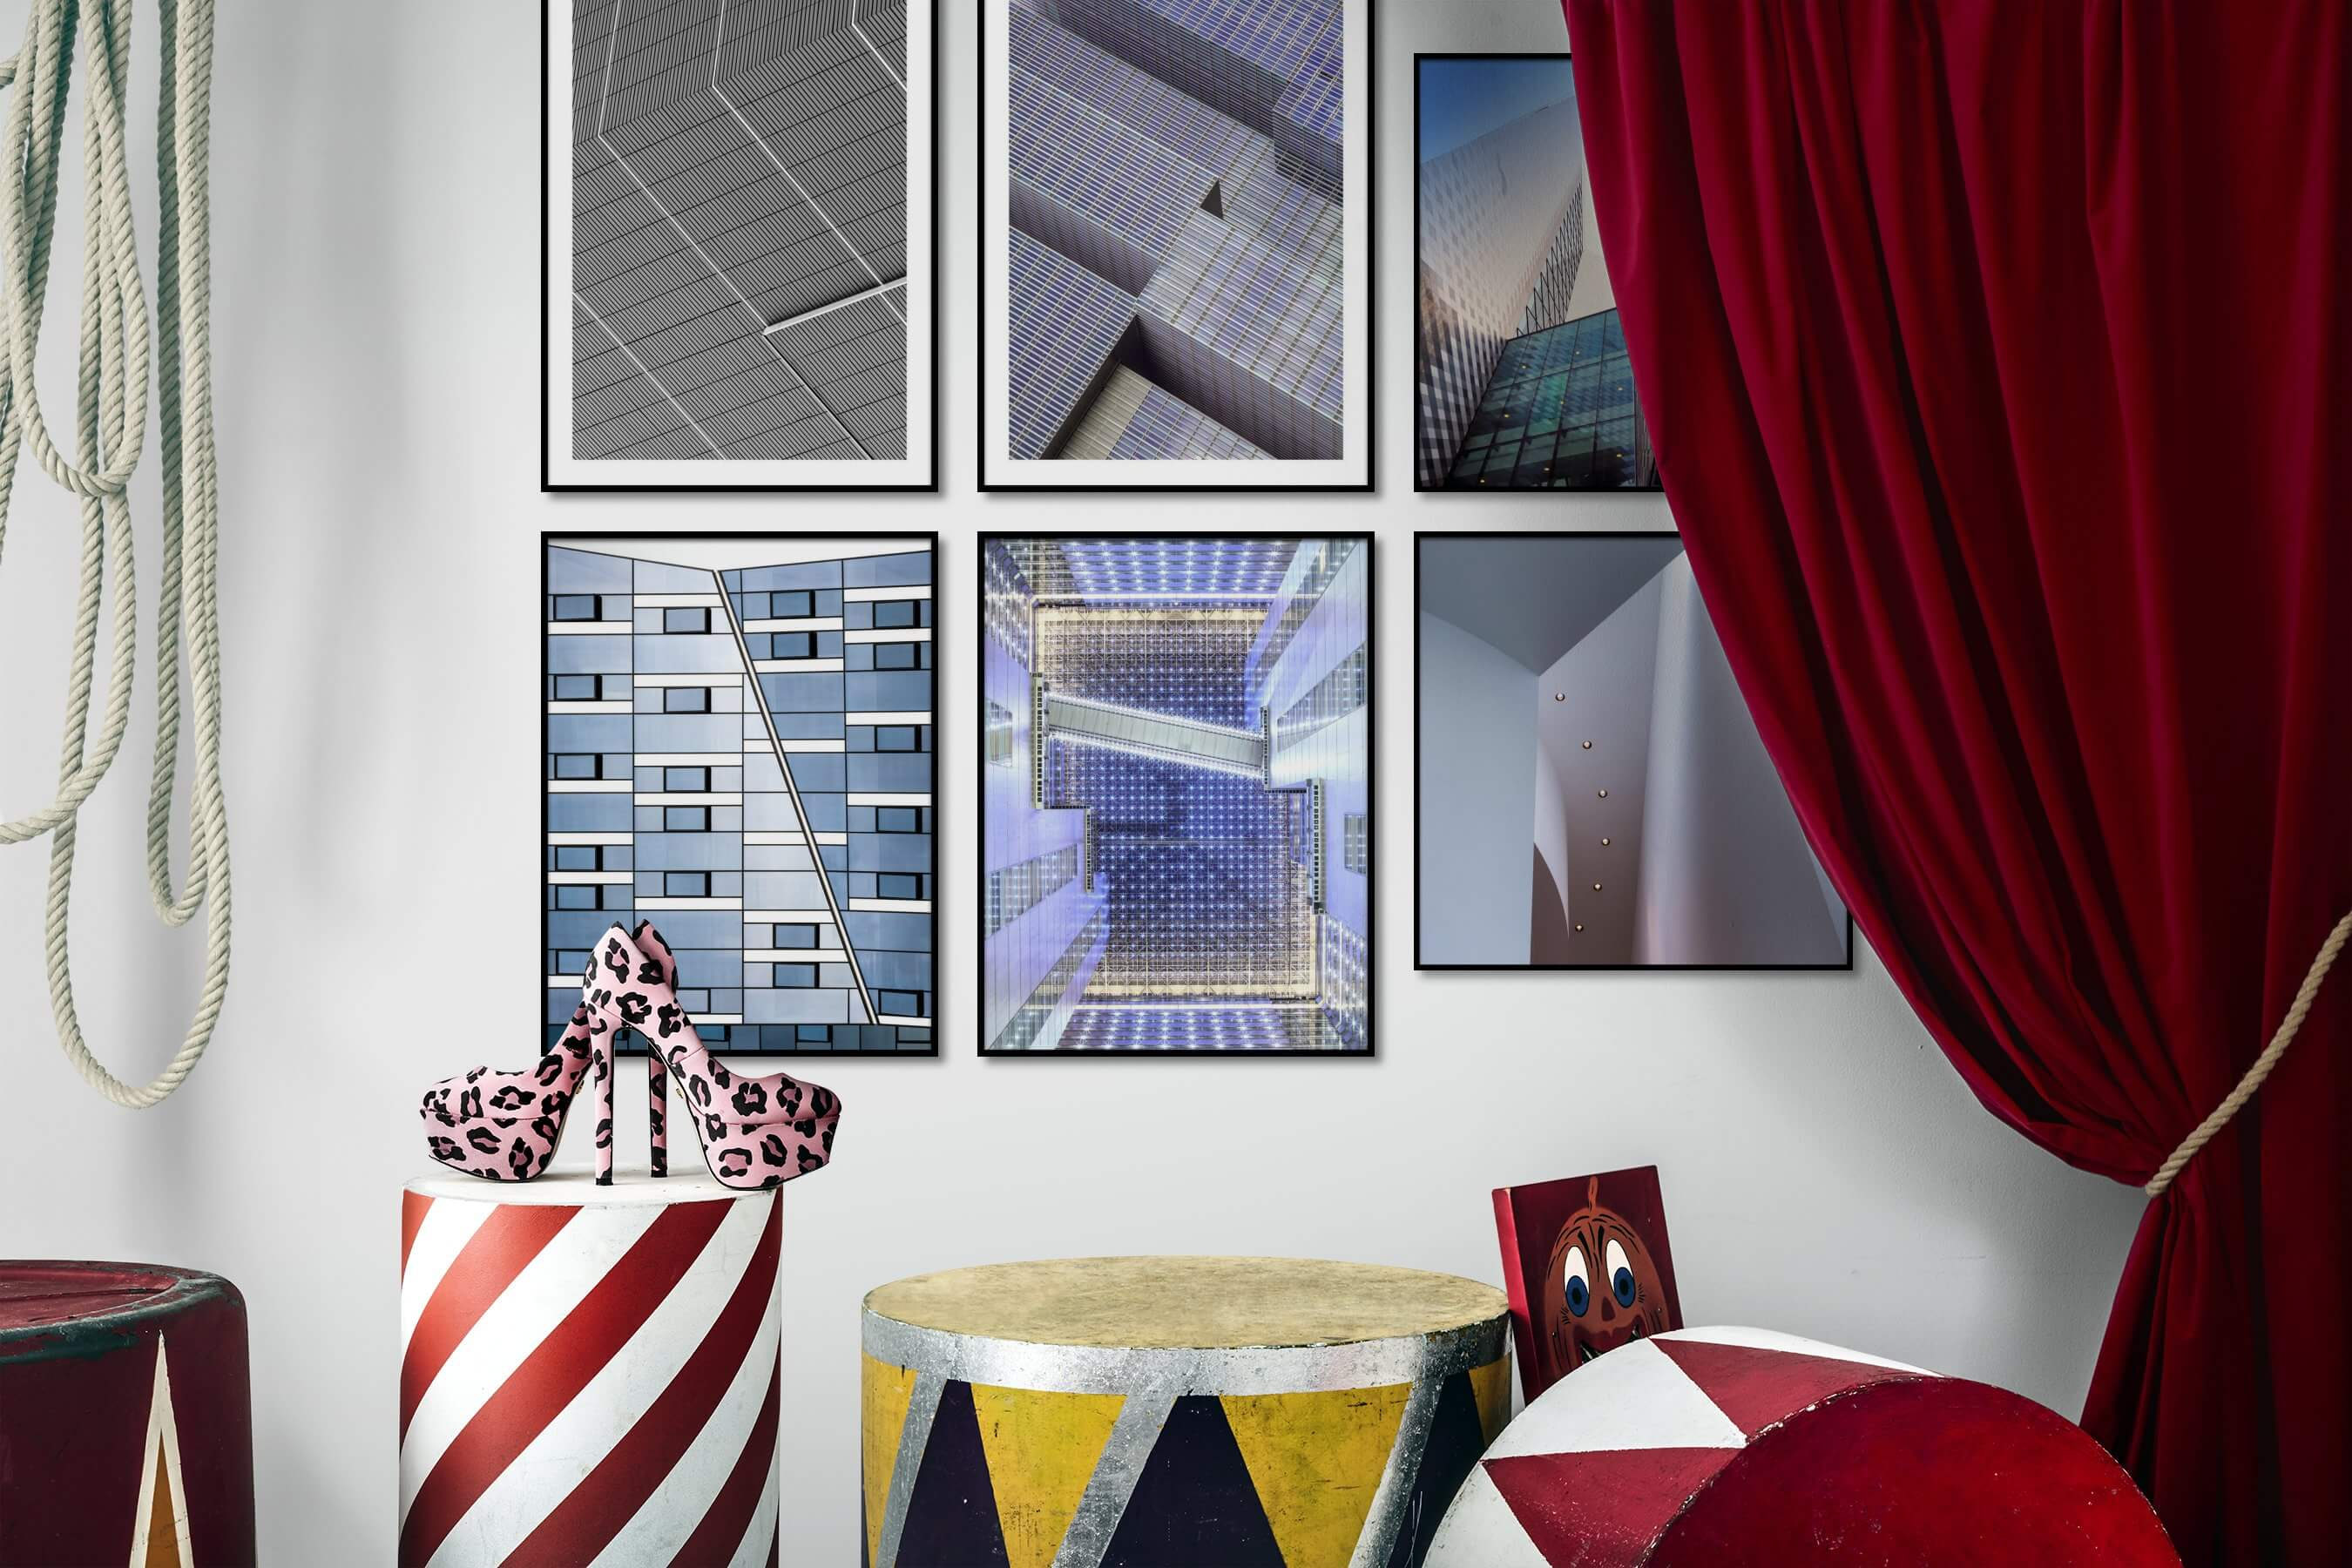 Gallery wall idea with six framed pictures arranged on a wall depicting Black & White, For the Maximalist, For the Moderate, and City Life